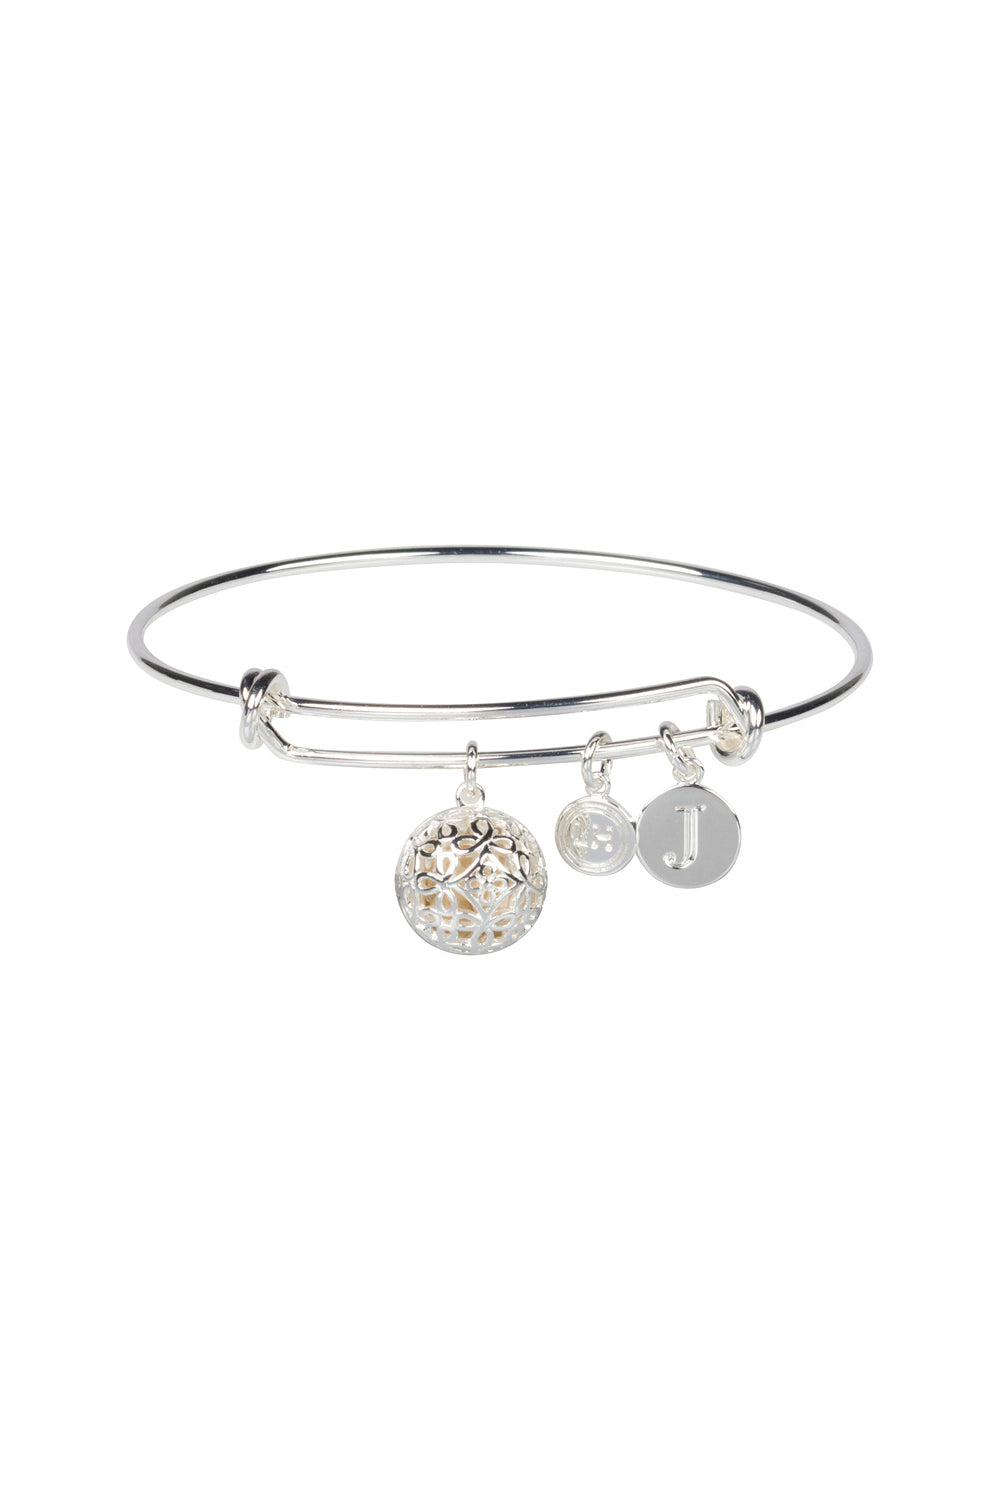 """J"" Initial Fragrance Bangle with Silver Tone Charm"